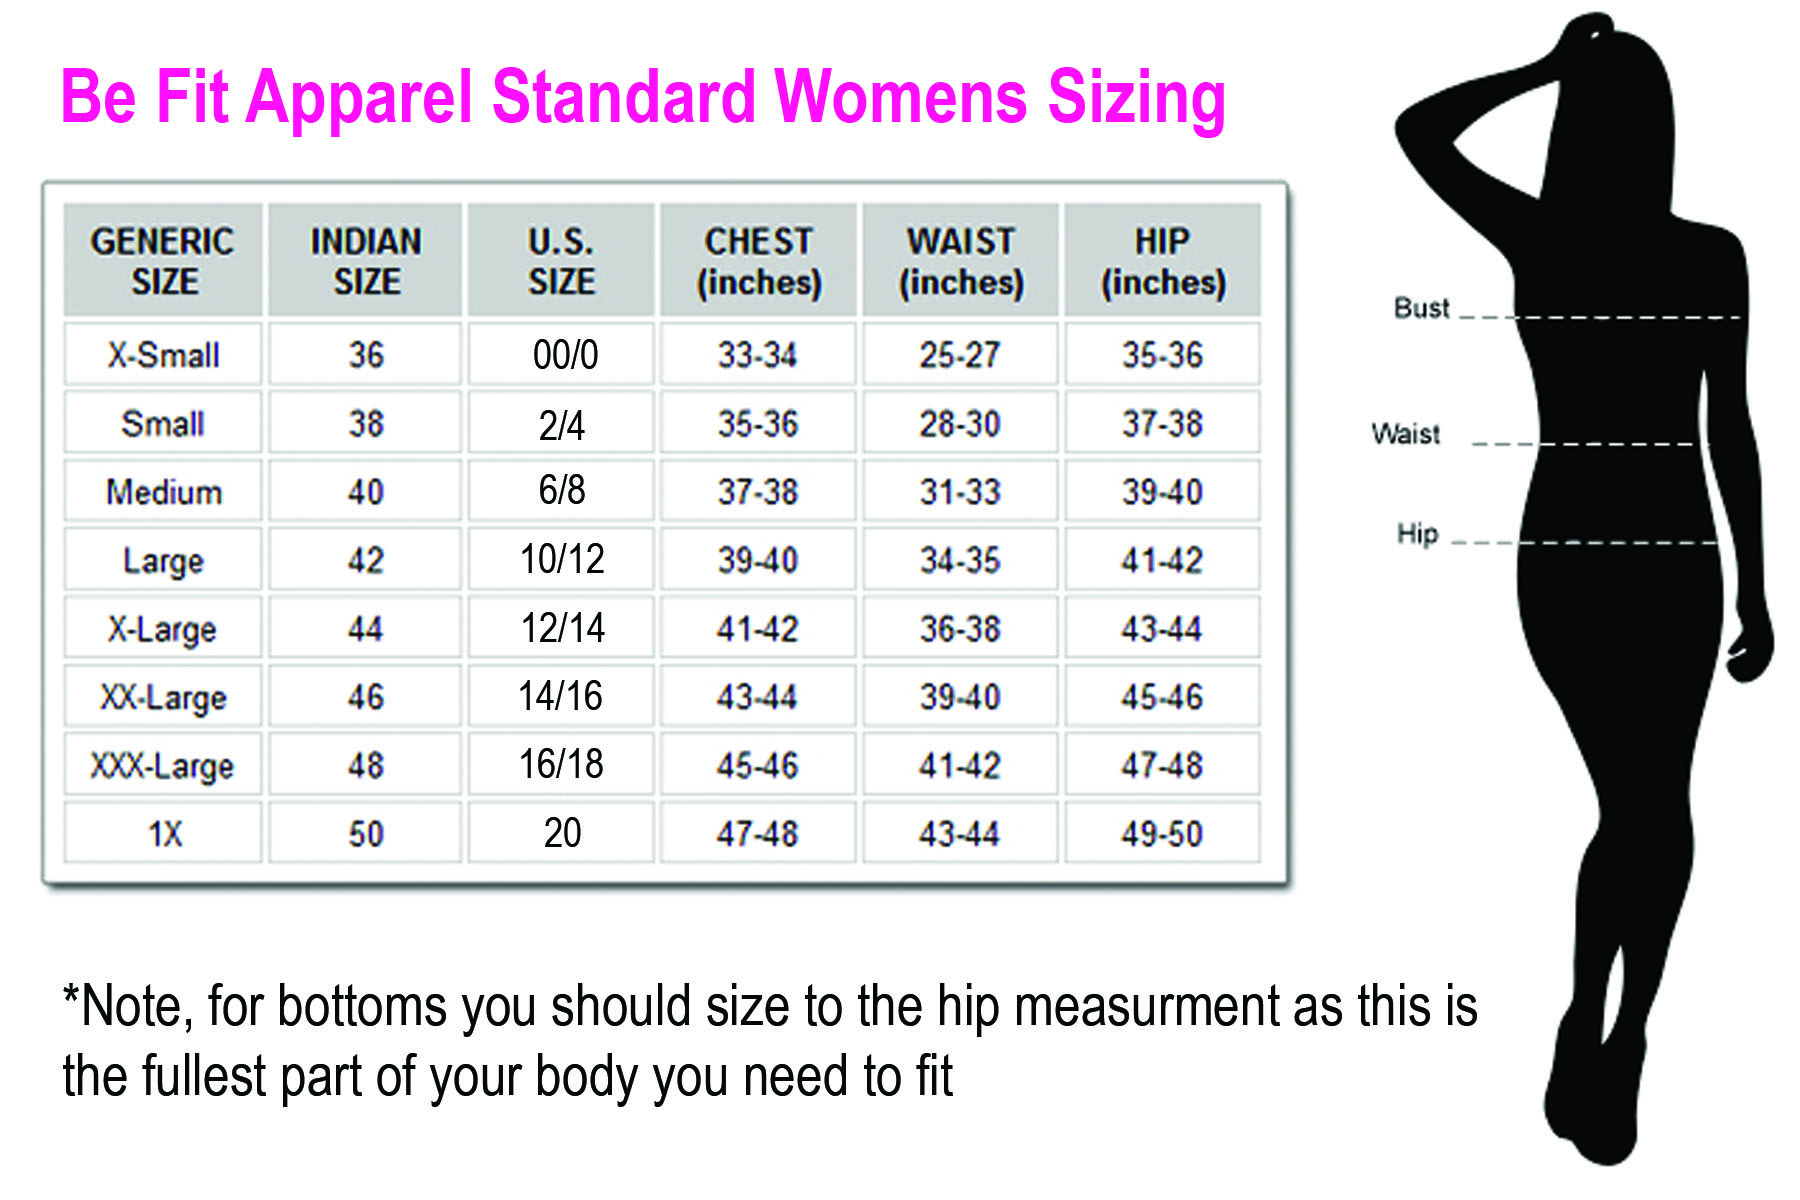 Sizing be fit apparel international sizing conversion chart some measurments may vary and inch or so geenschuldenfo Choice Image